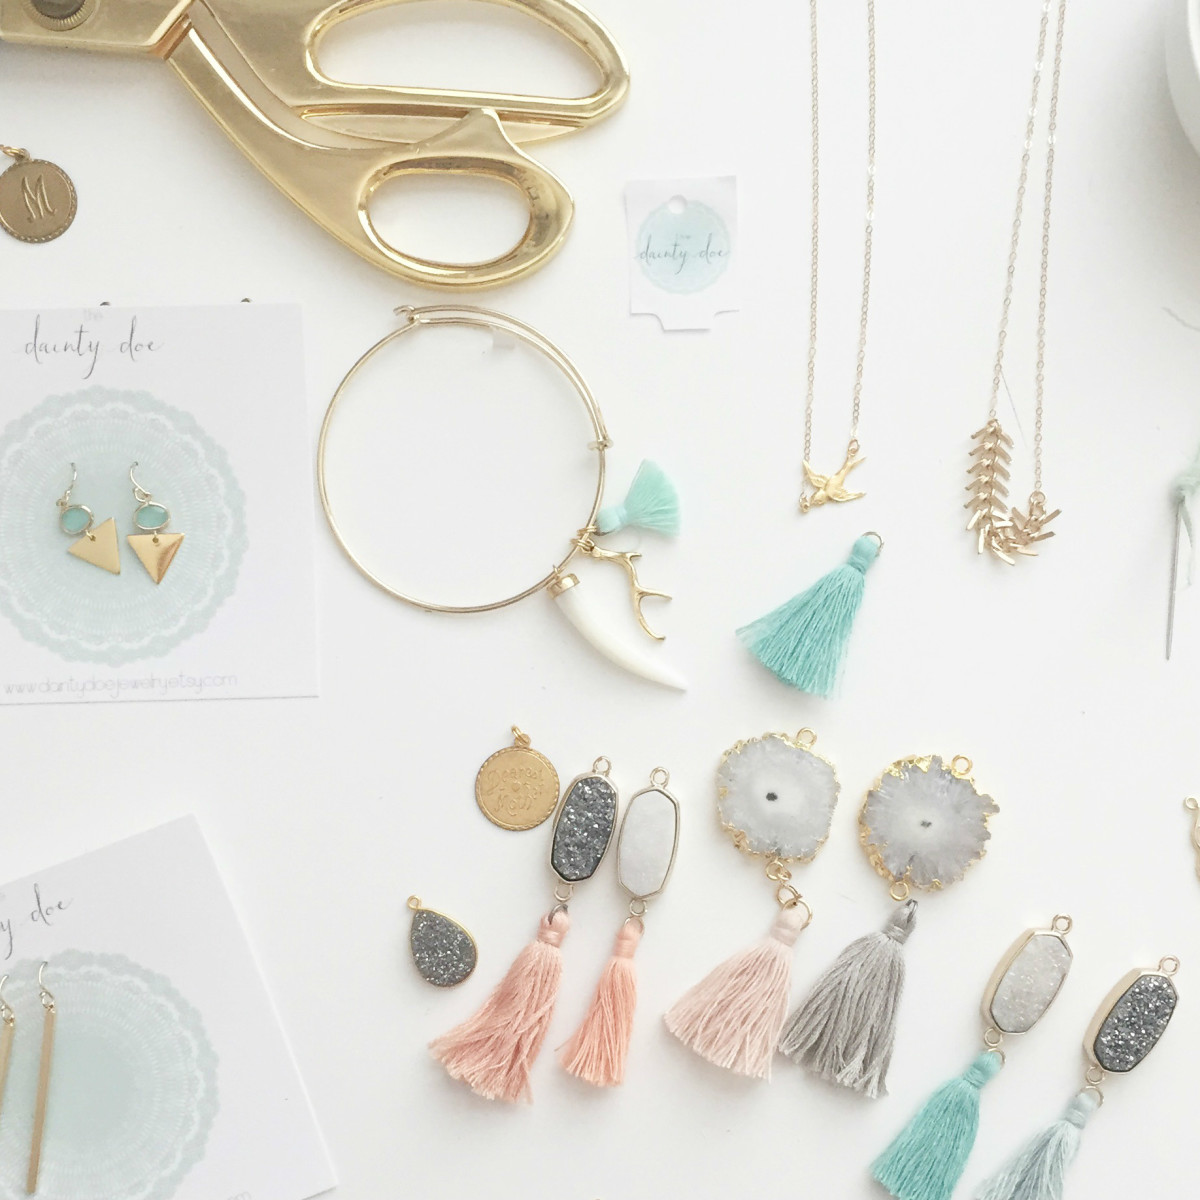 e22f73a6fea The 5 up-and-coming Austin jewelry designers everyone should know ...